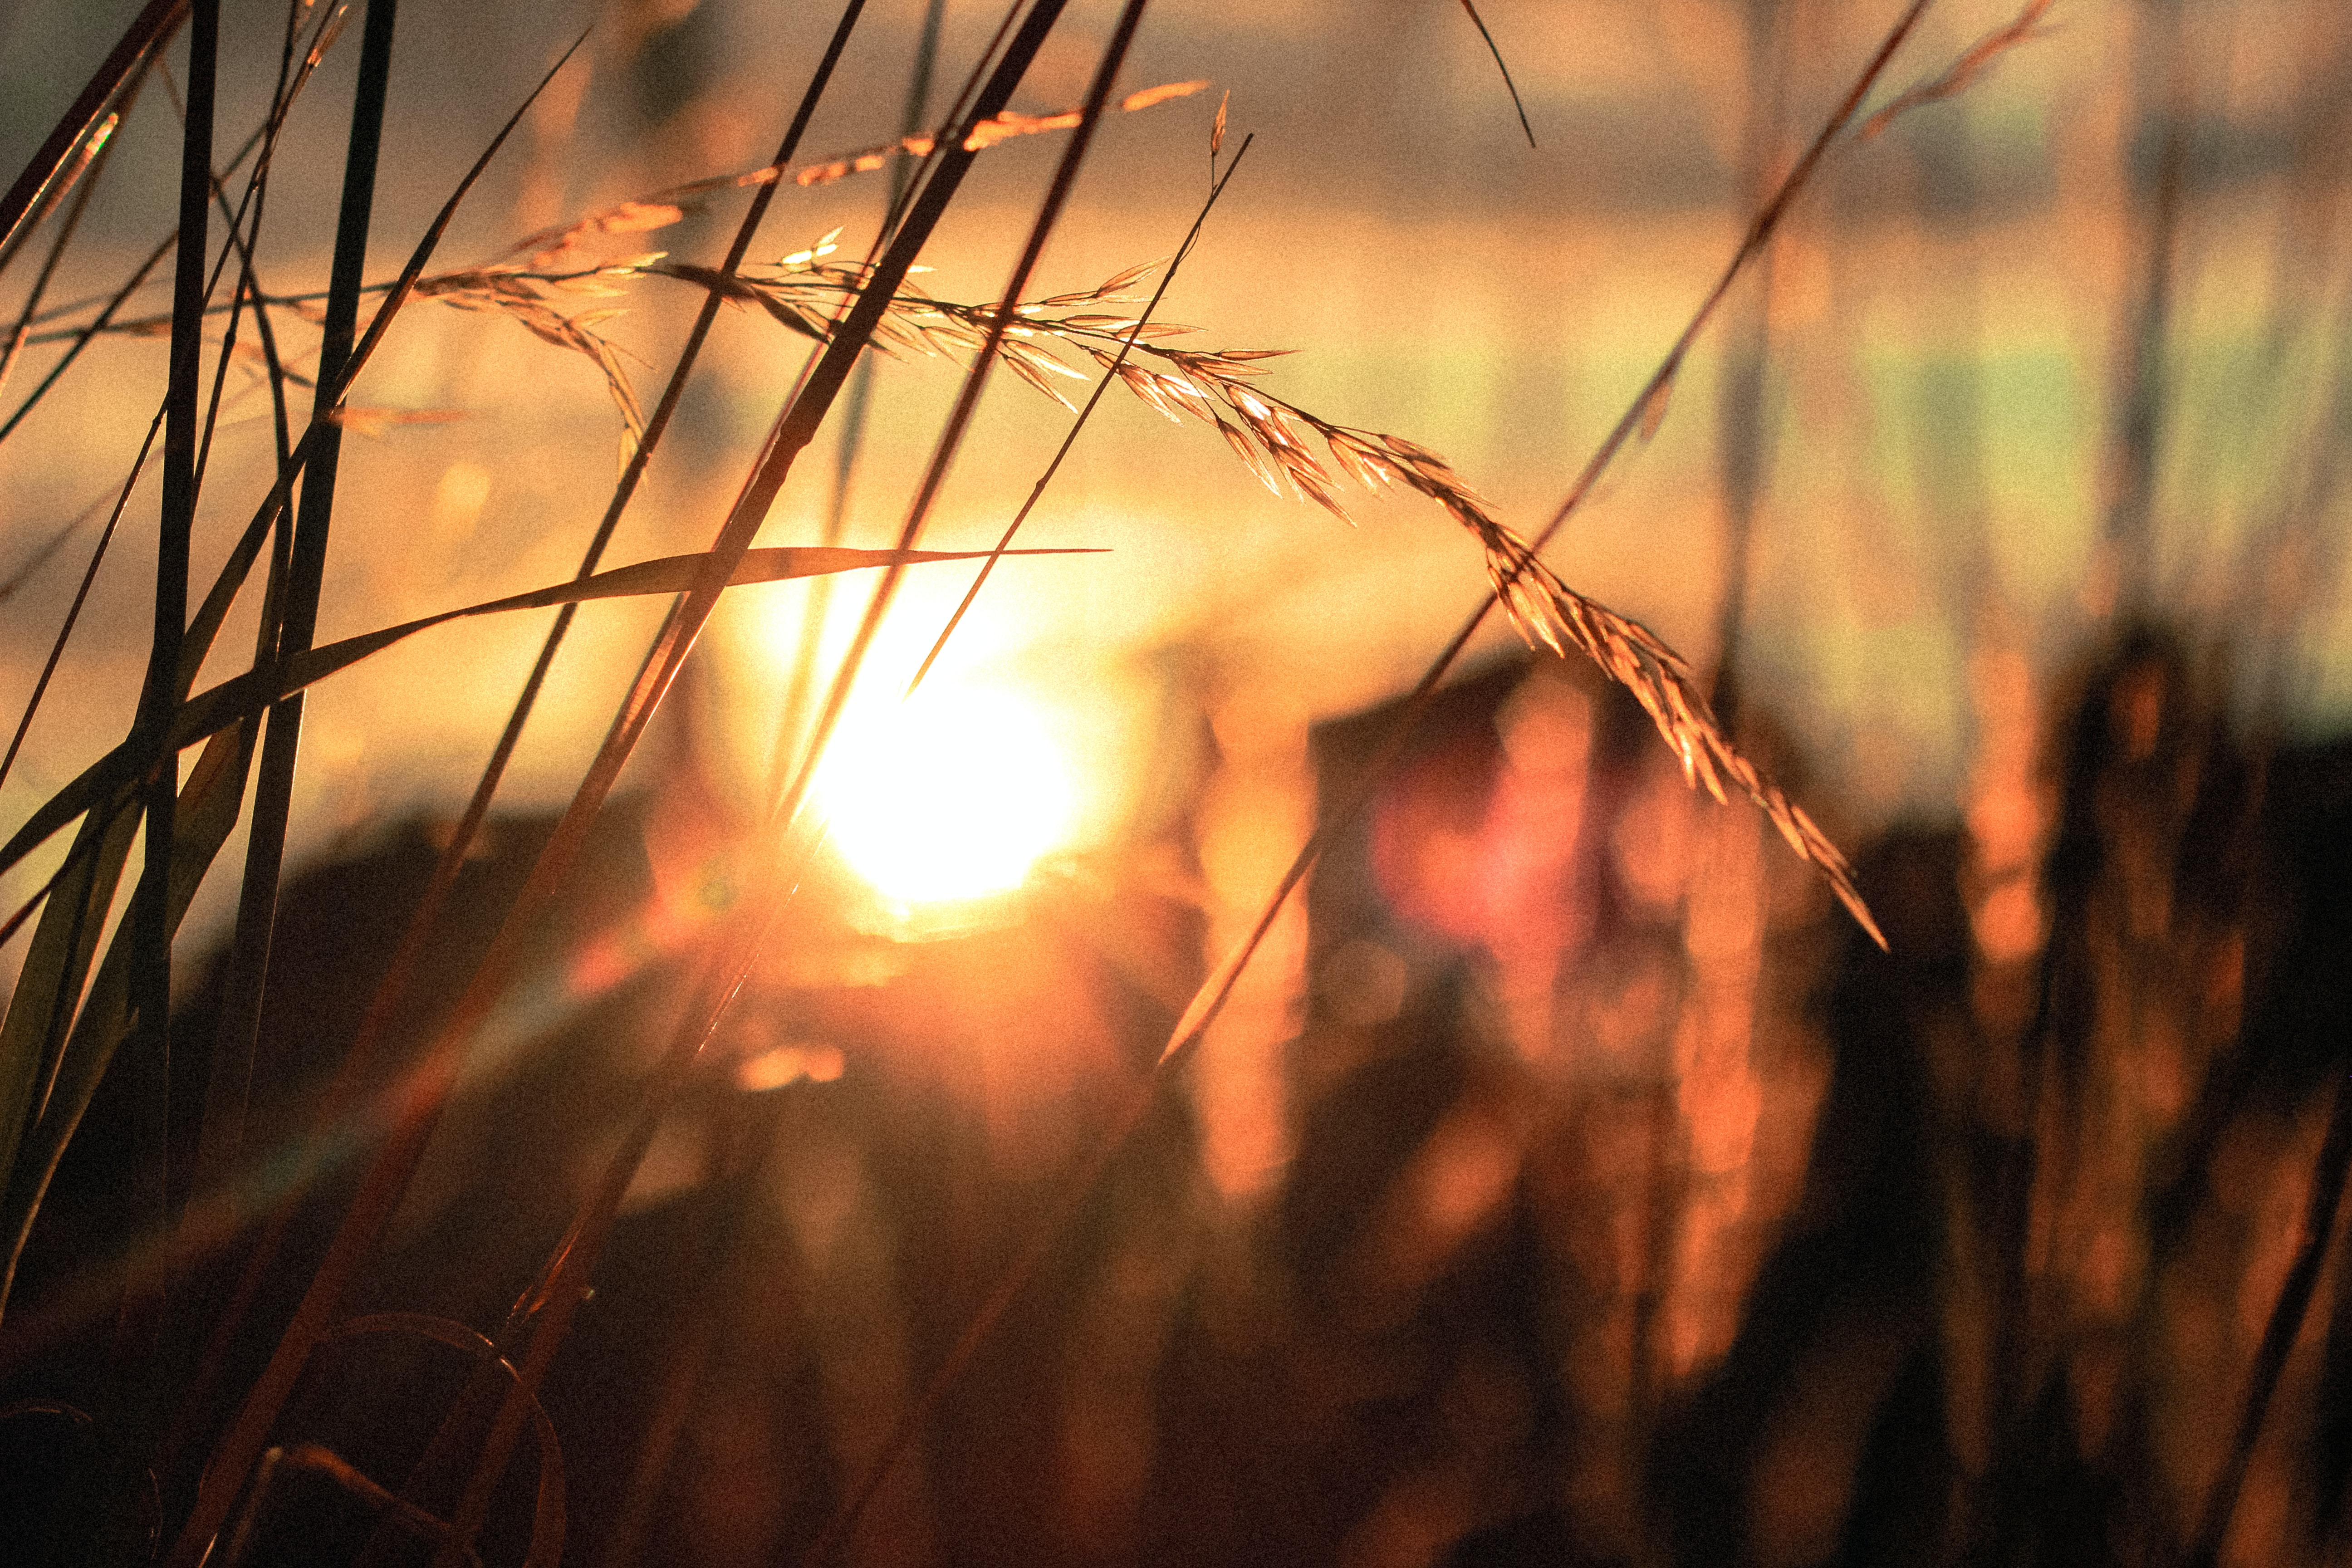 A bright sunset behind flowering blades of grass